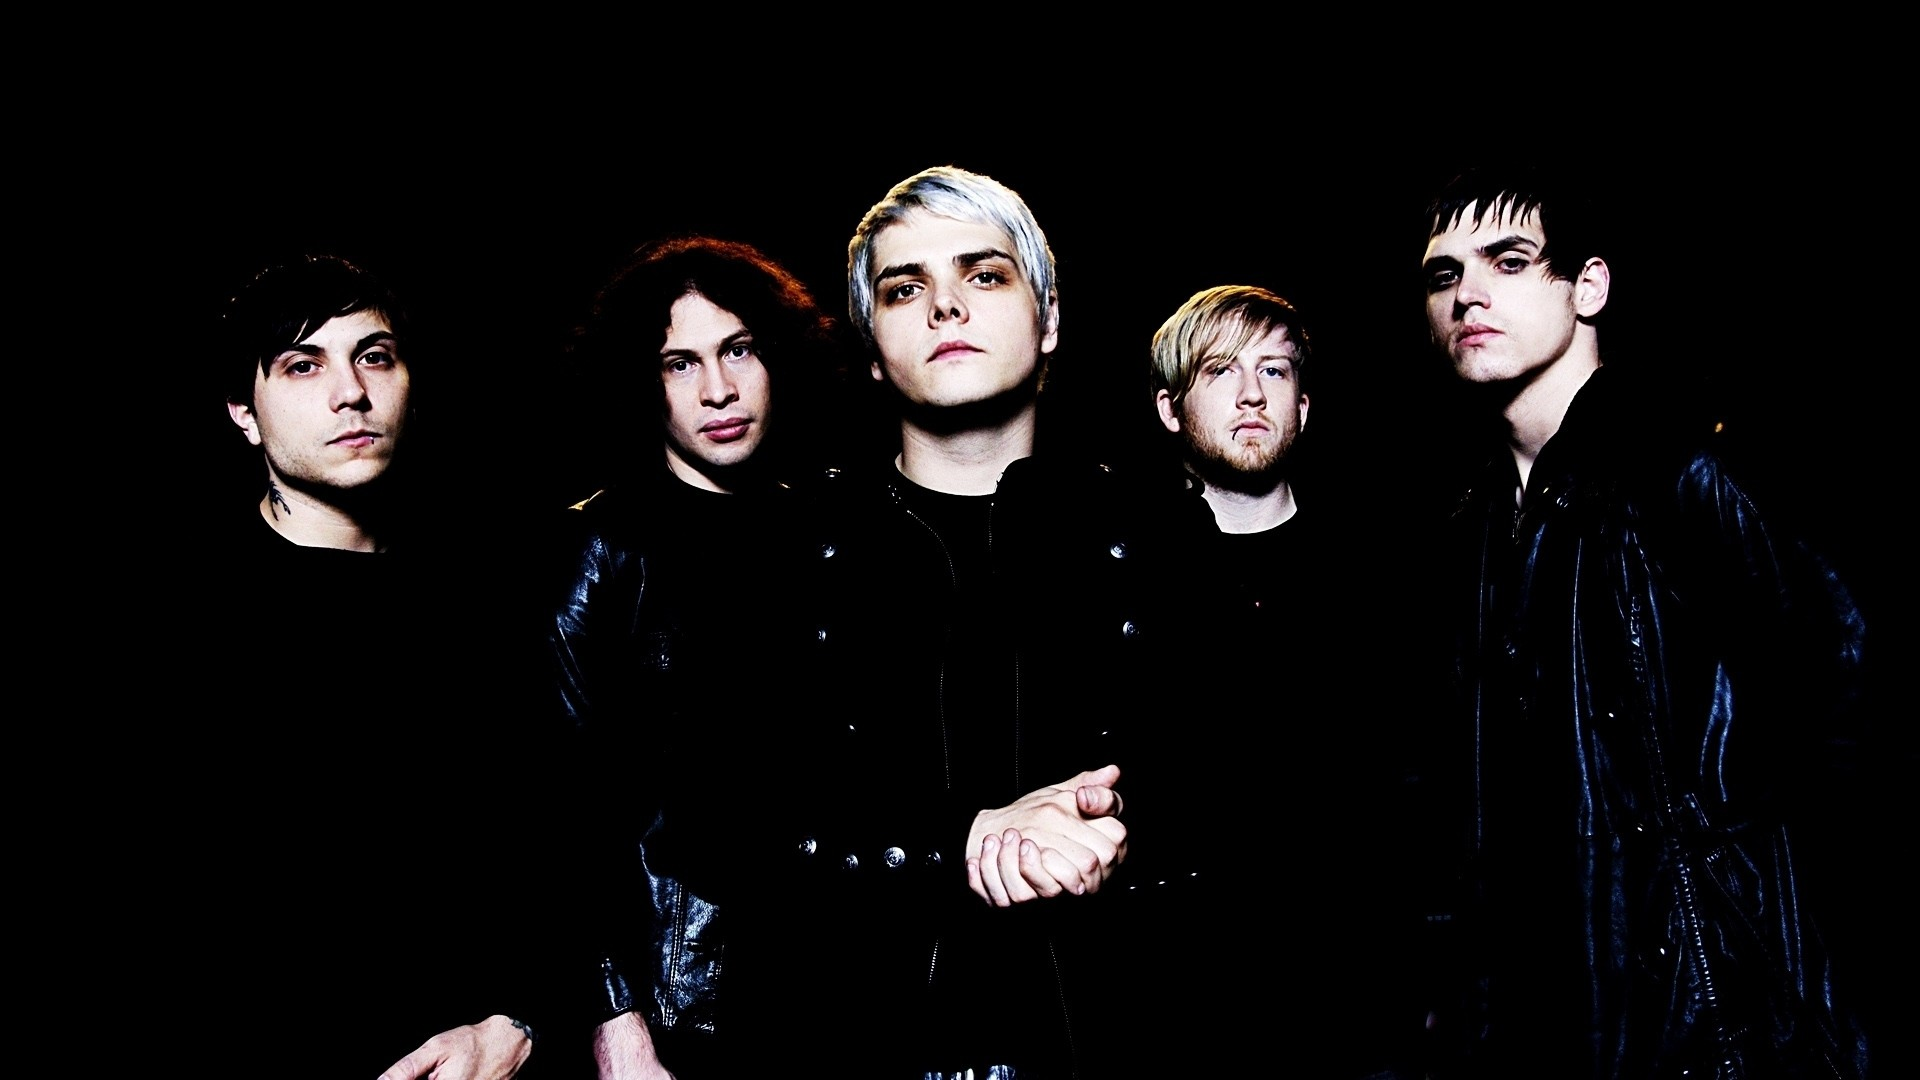 1920x1080 Preview Wallpaper My Chemical Romance Band Members Look Background